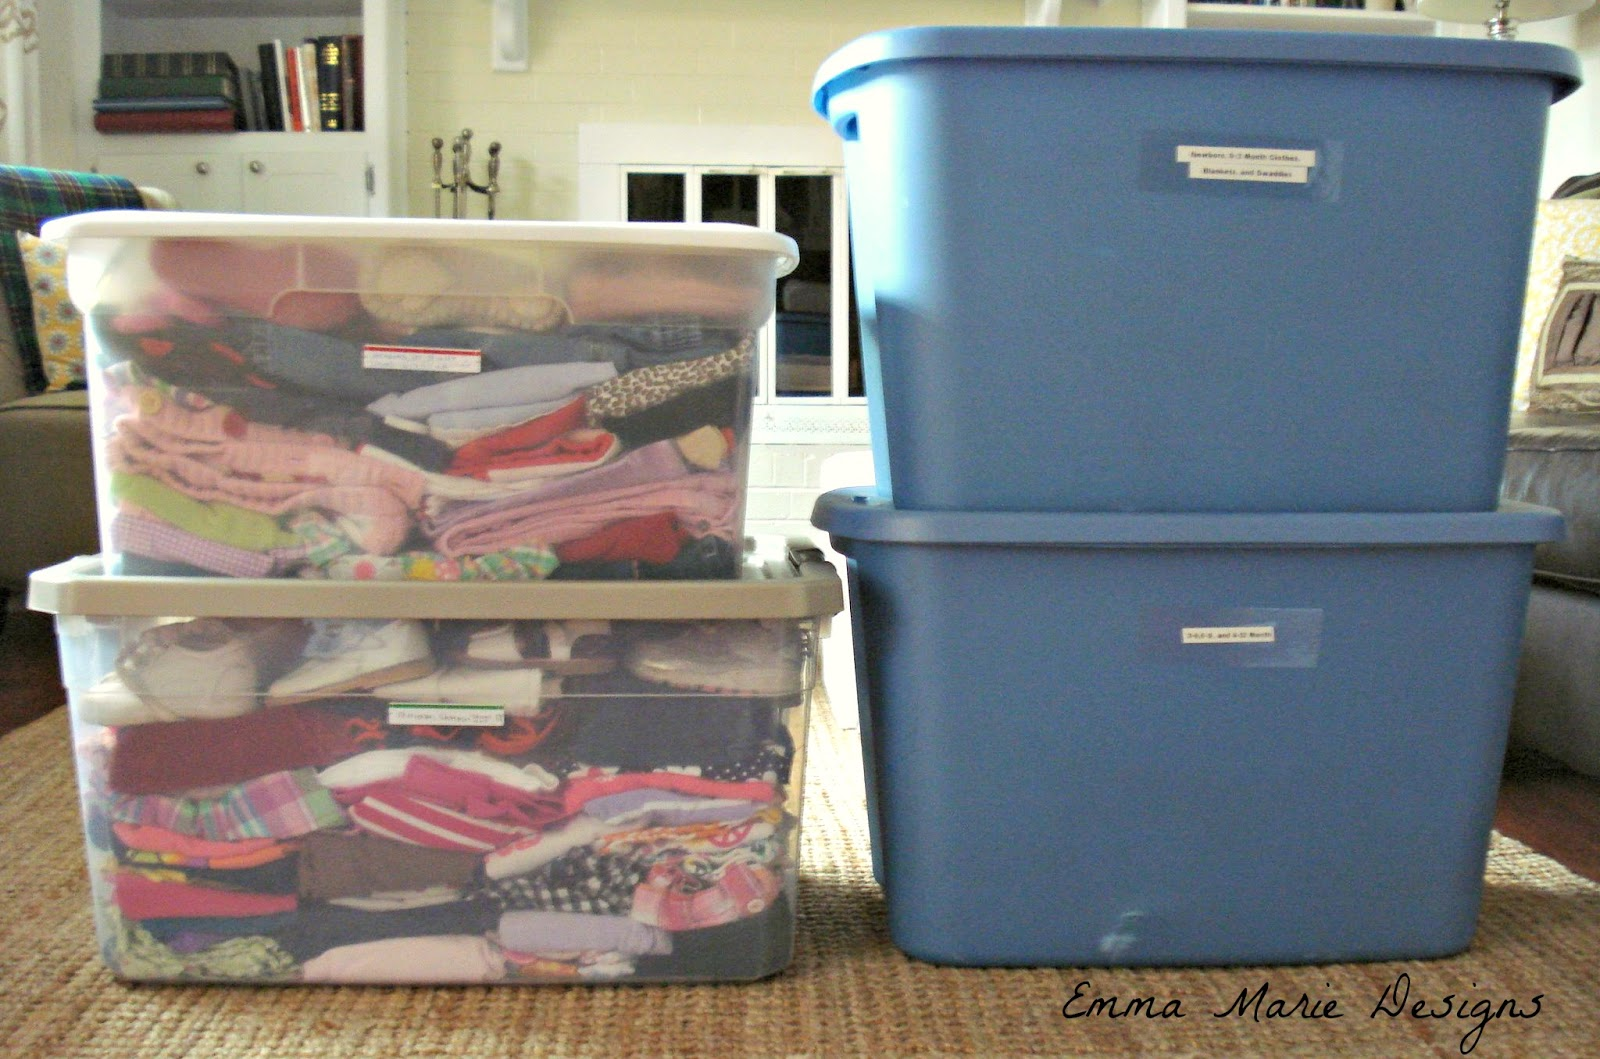 First, I Laid Out All The Clothes Sorting Them Into Piles According To Size  So That I Could See Exactly What Quantities I ...